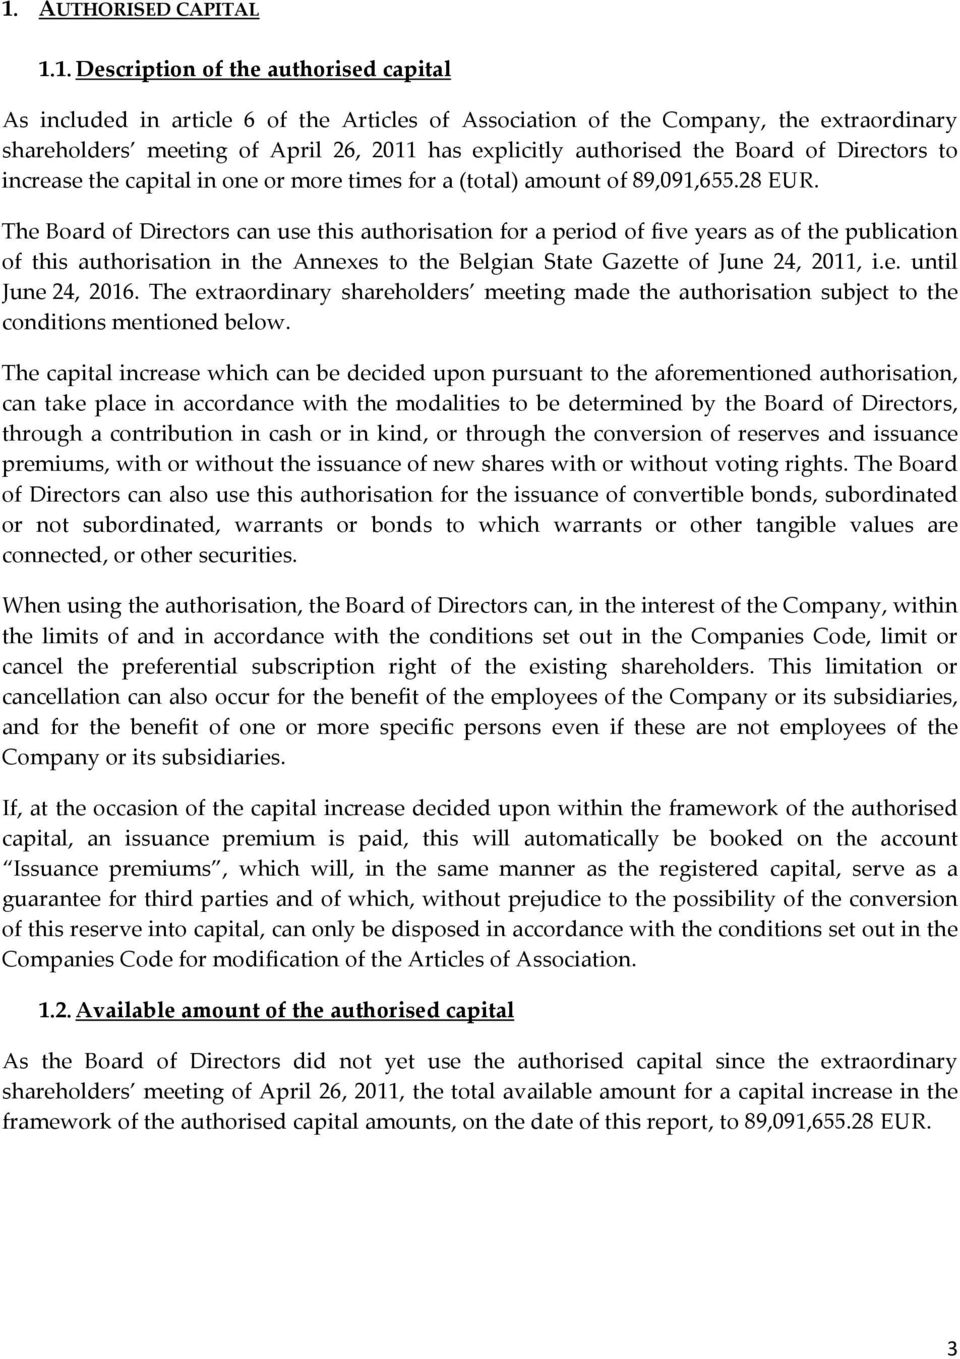 The Board of Directors can use this authorisation for a period of five years as of the publication of this authorisation in the Annexes to the Belgian State Gazette of June 24, 2011, i.e. until June 24, 2016.